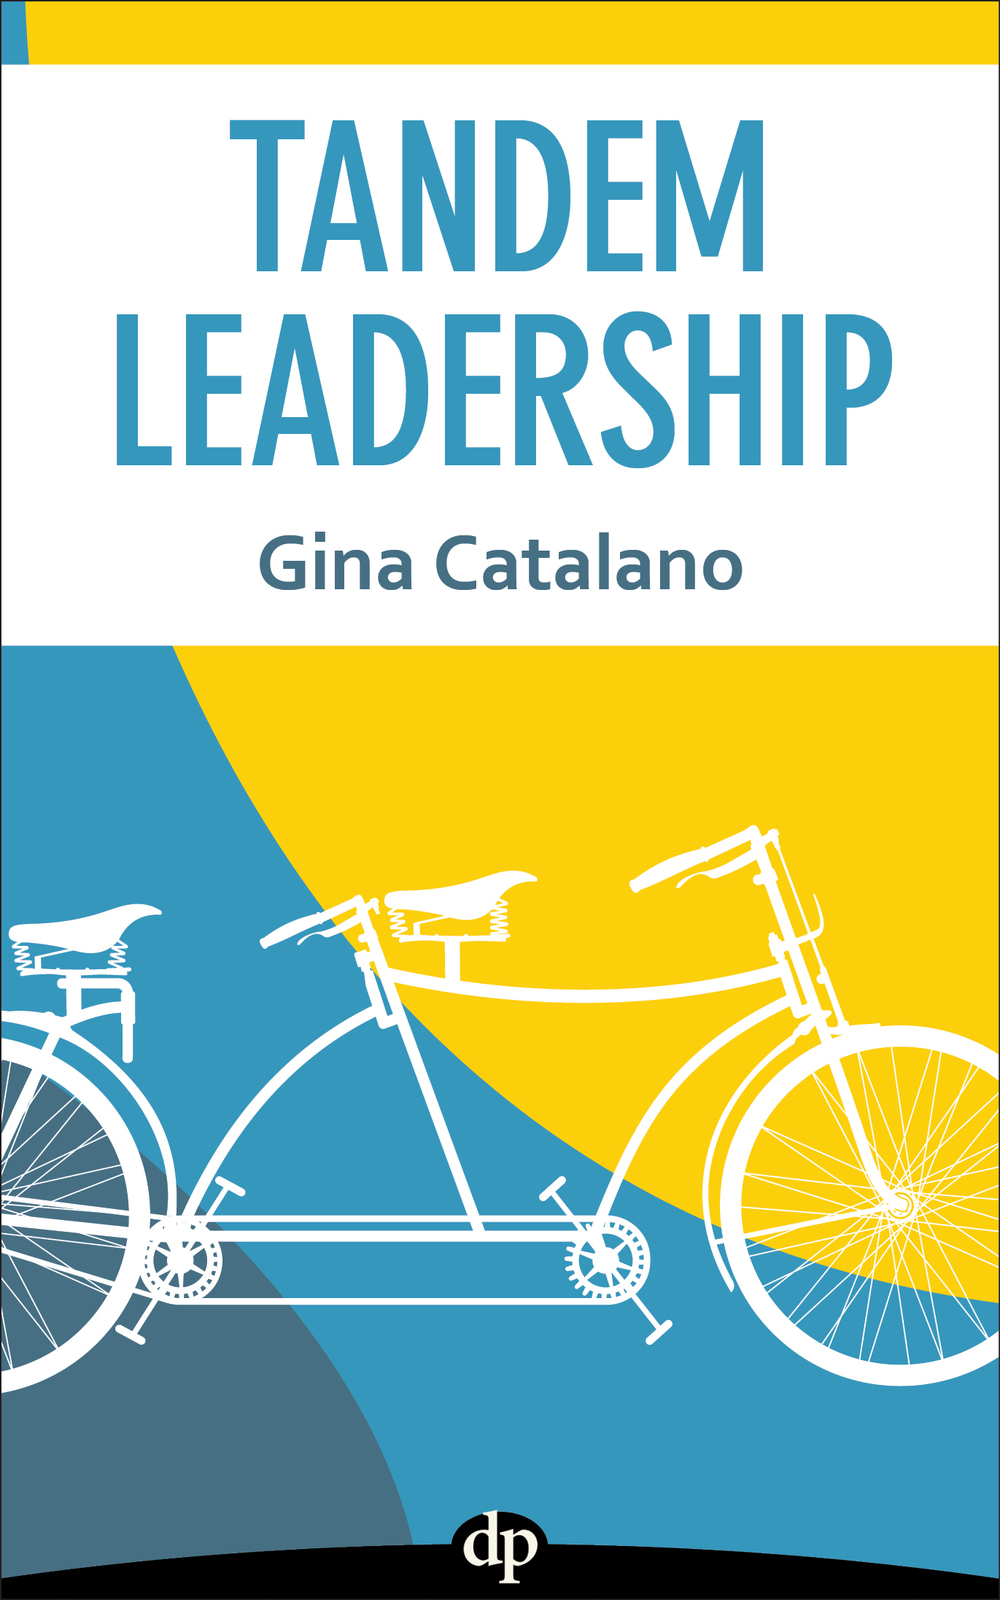 Tandem Leadership by Gina Catalano